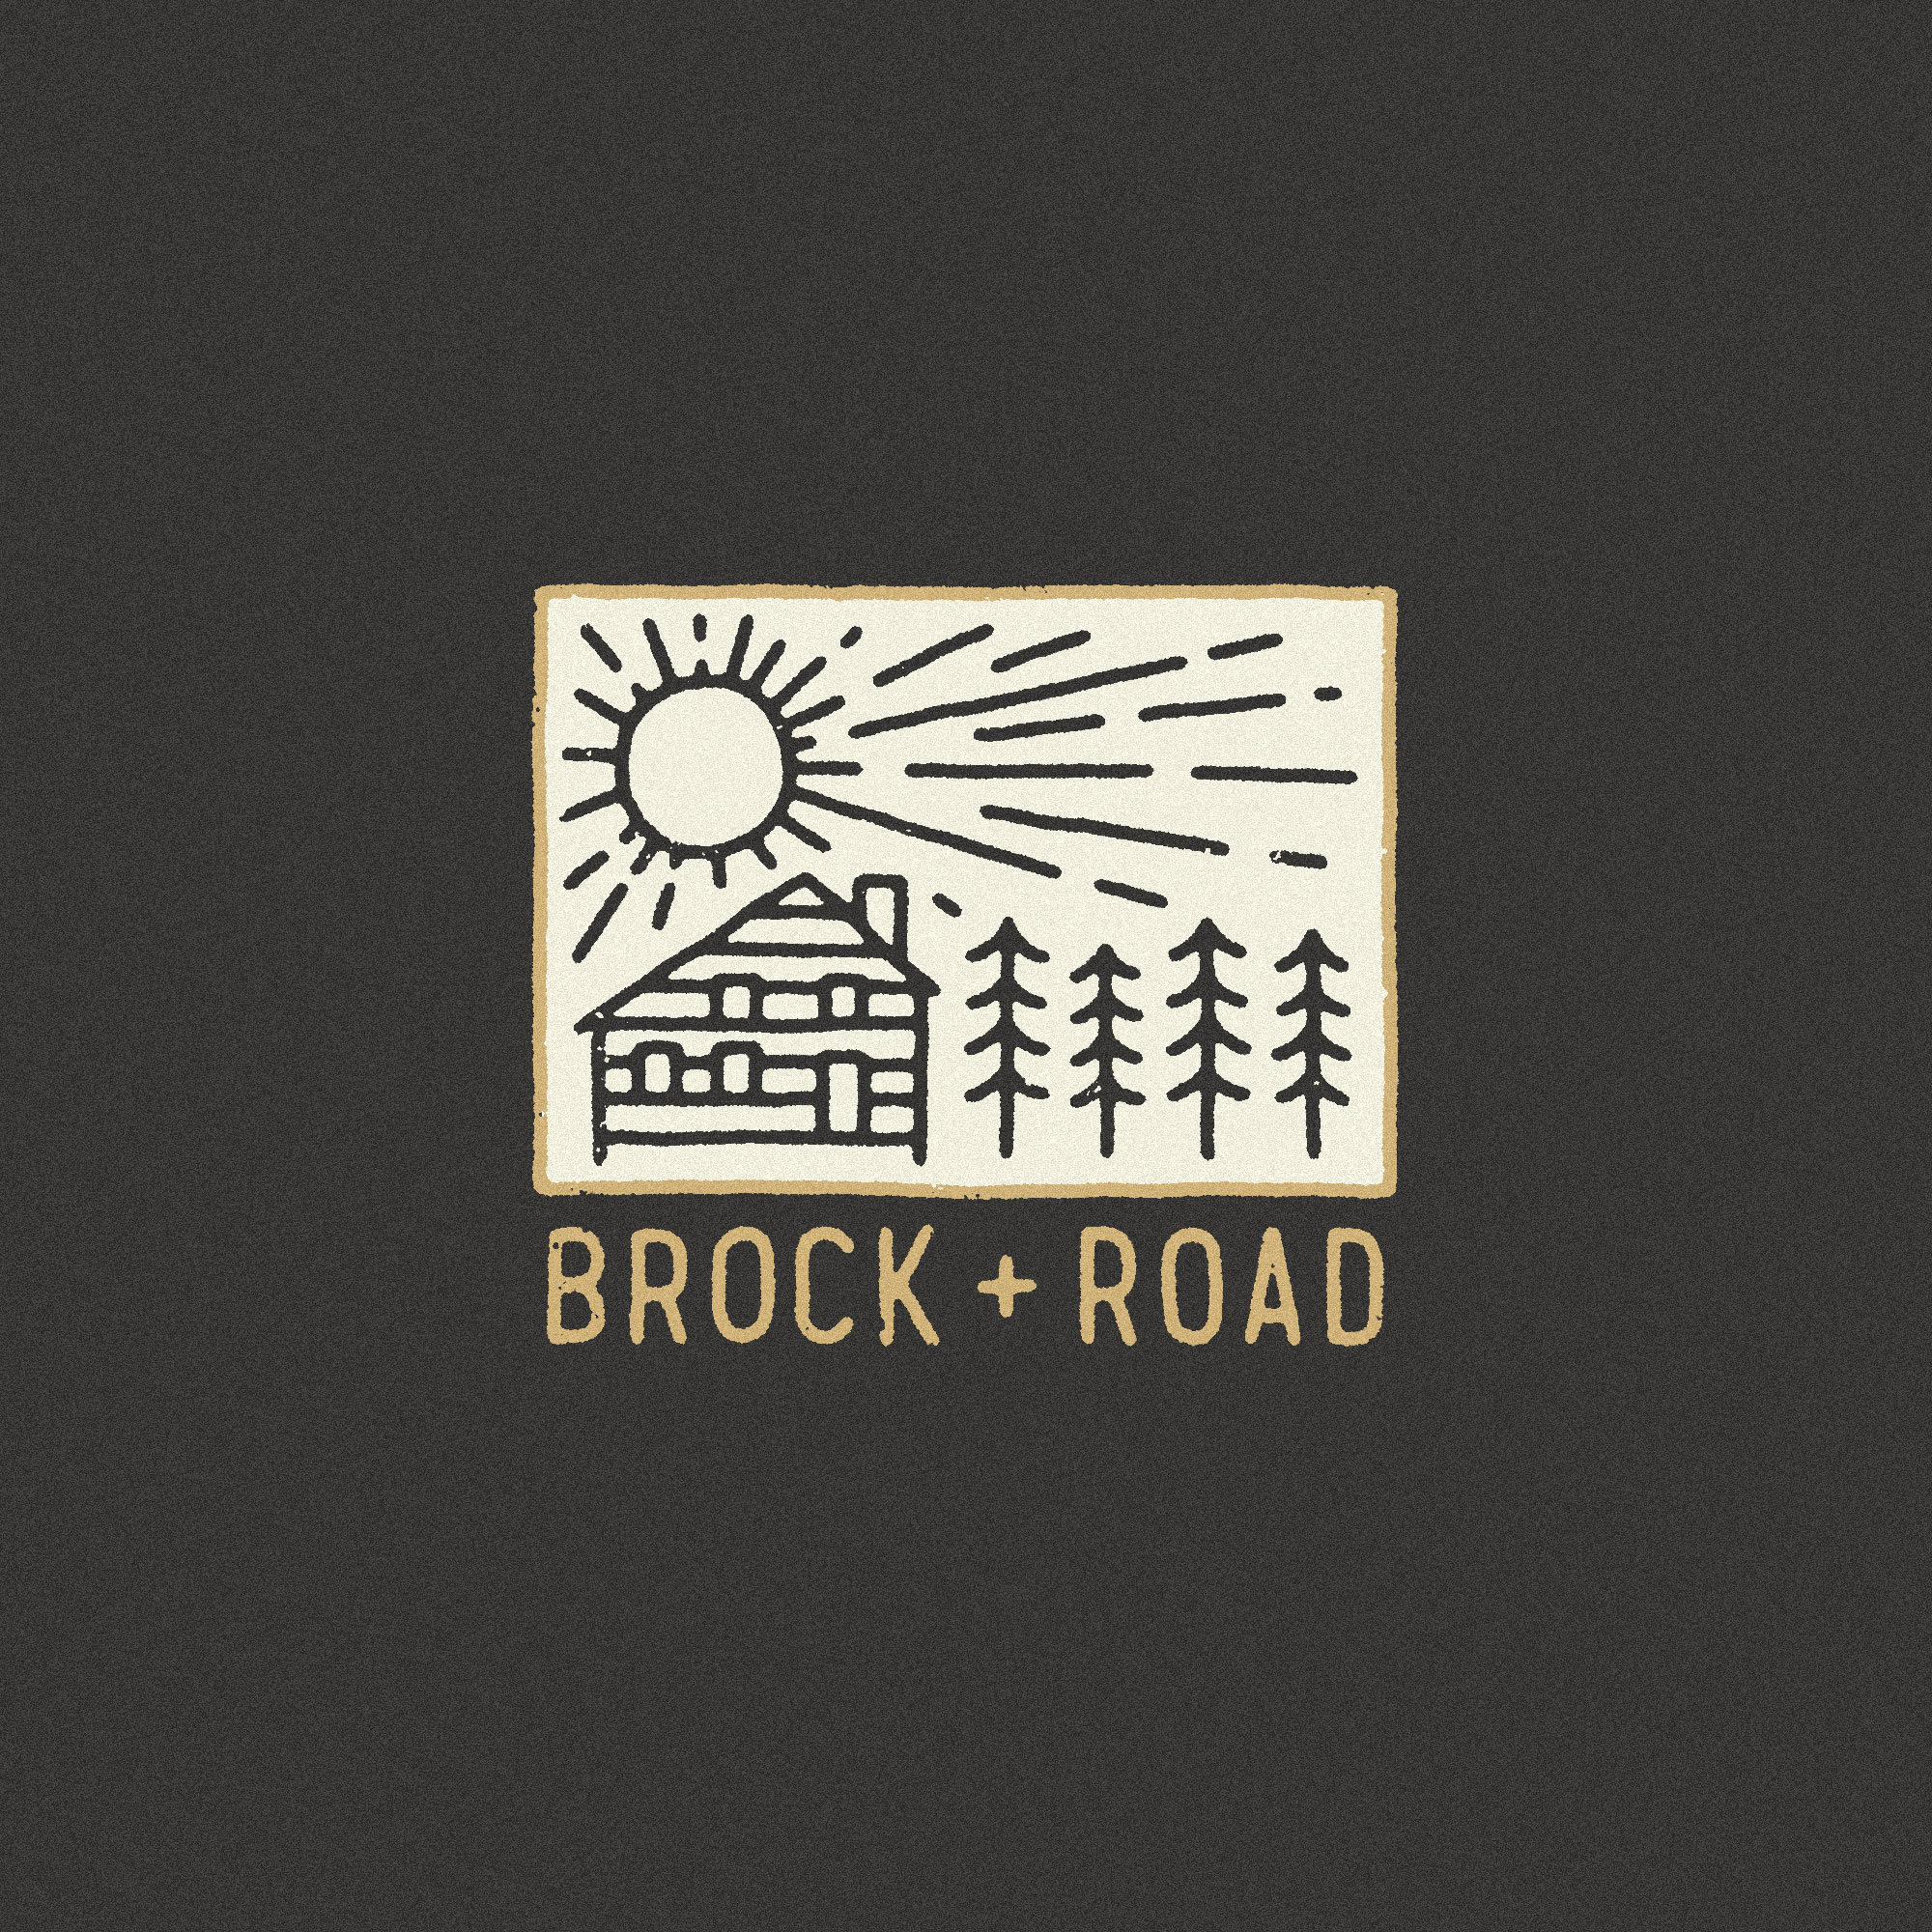 Brock-Road-House-IG-Post.JPG